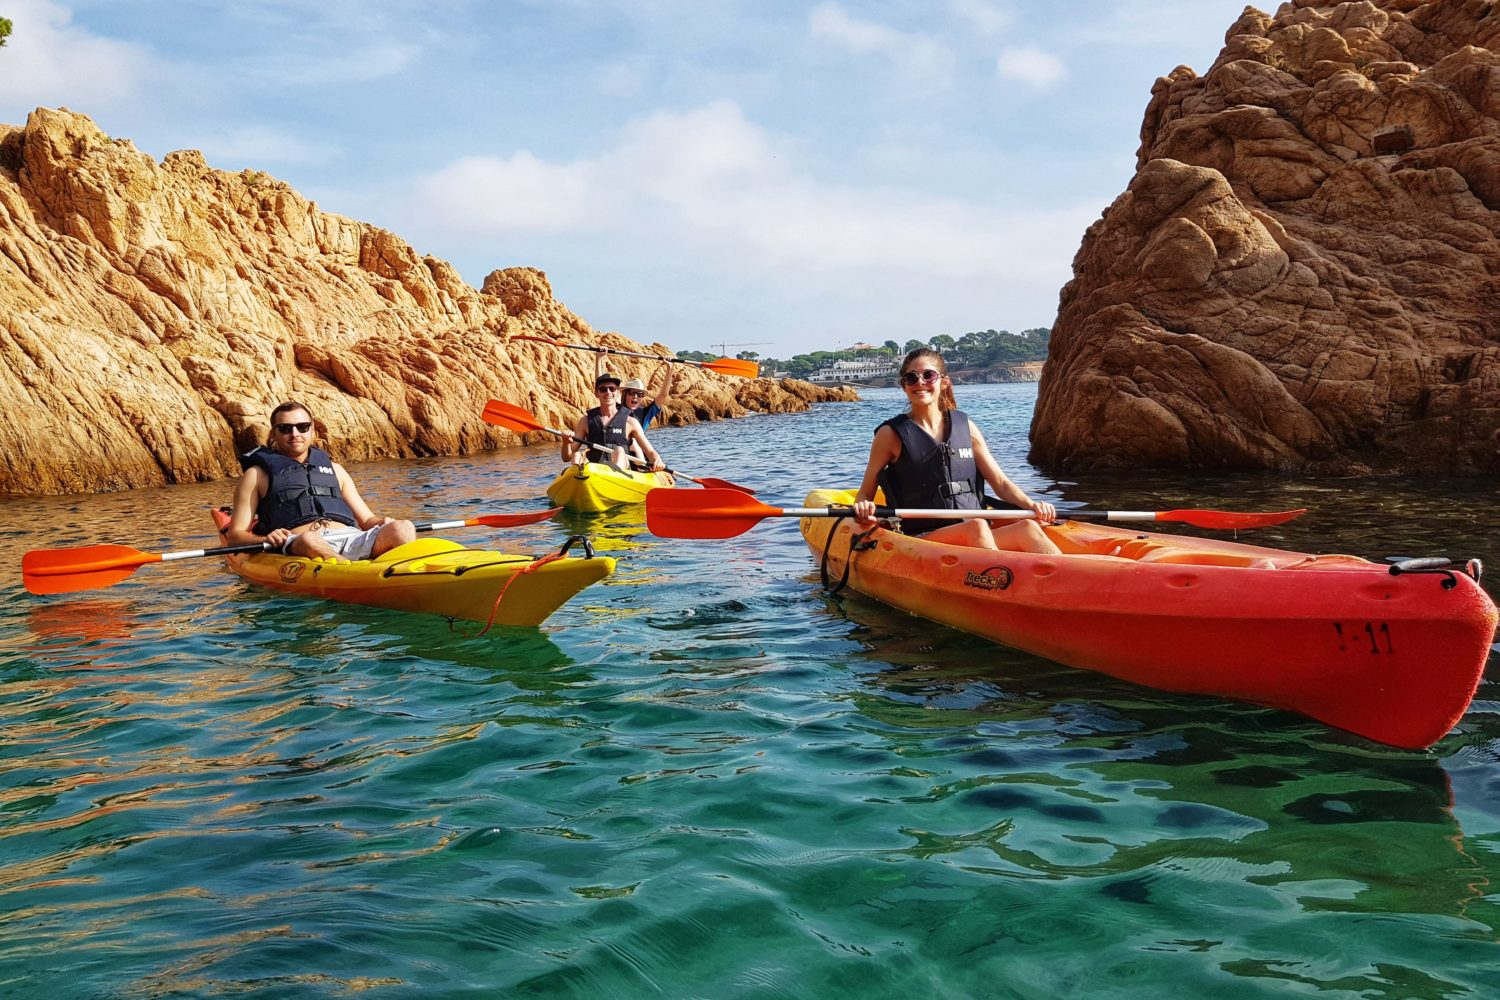 Small group kayaking tours from Barcelona include a coastal walk and plenty of time to relax on the beach.